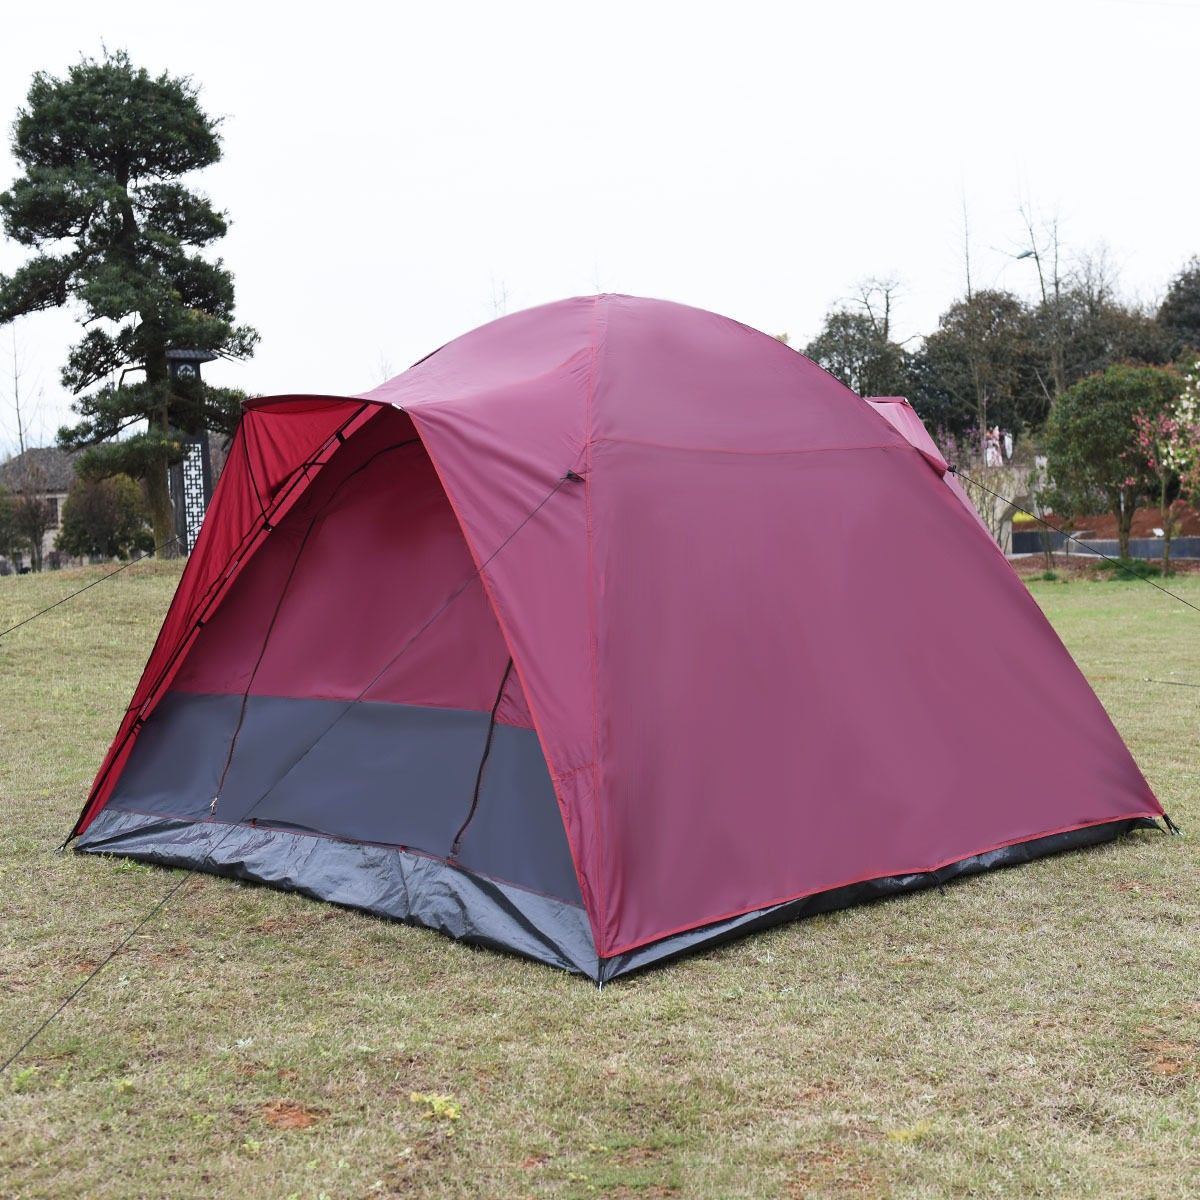 Waterproof 5-7 Person Camping Tent Outdoor Travel Hiking ...